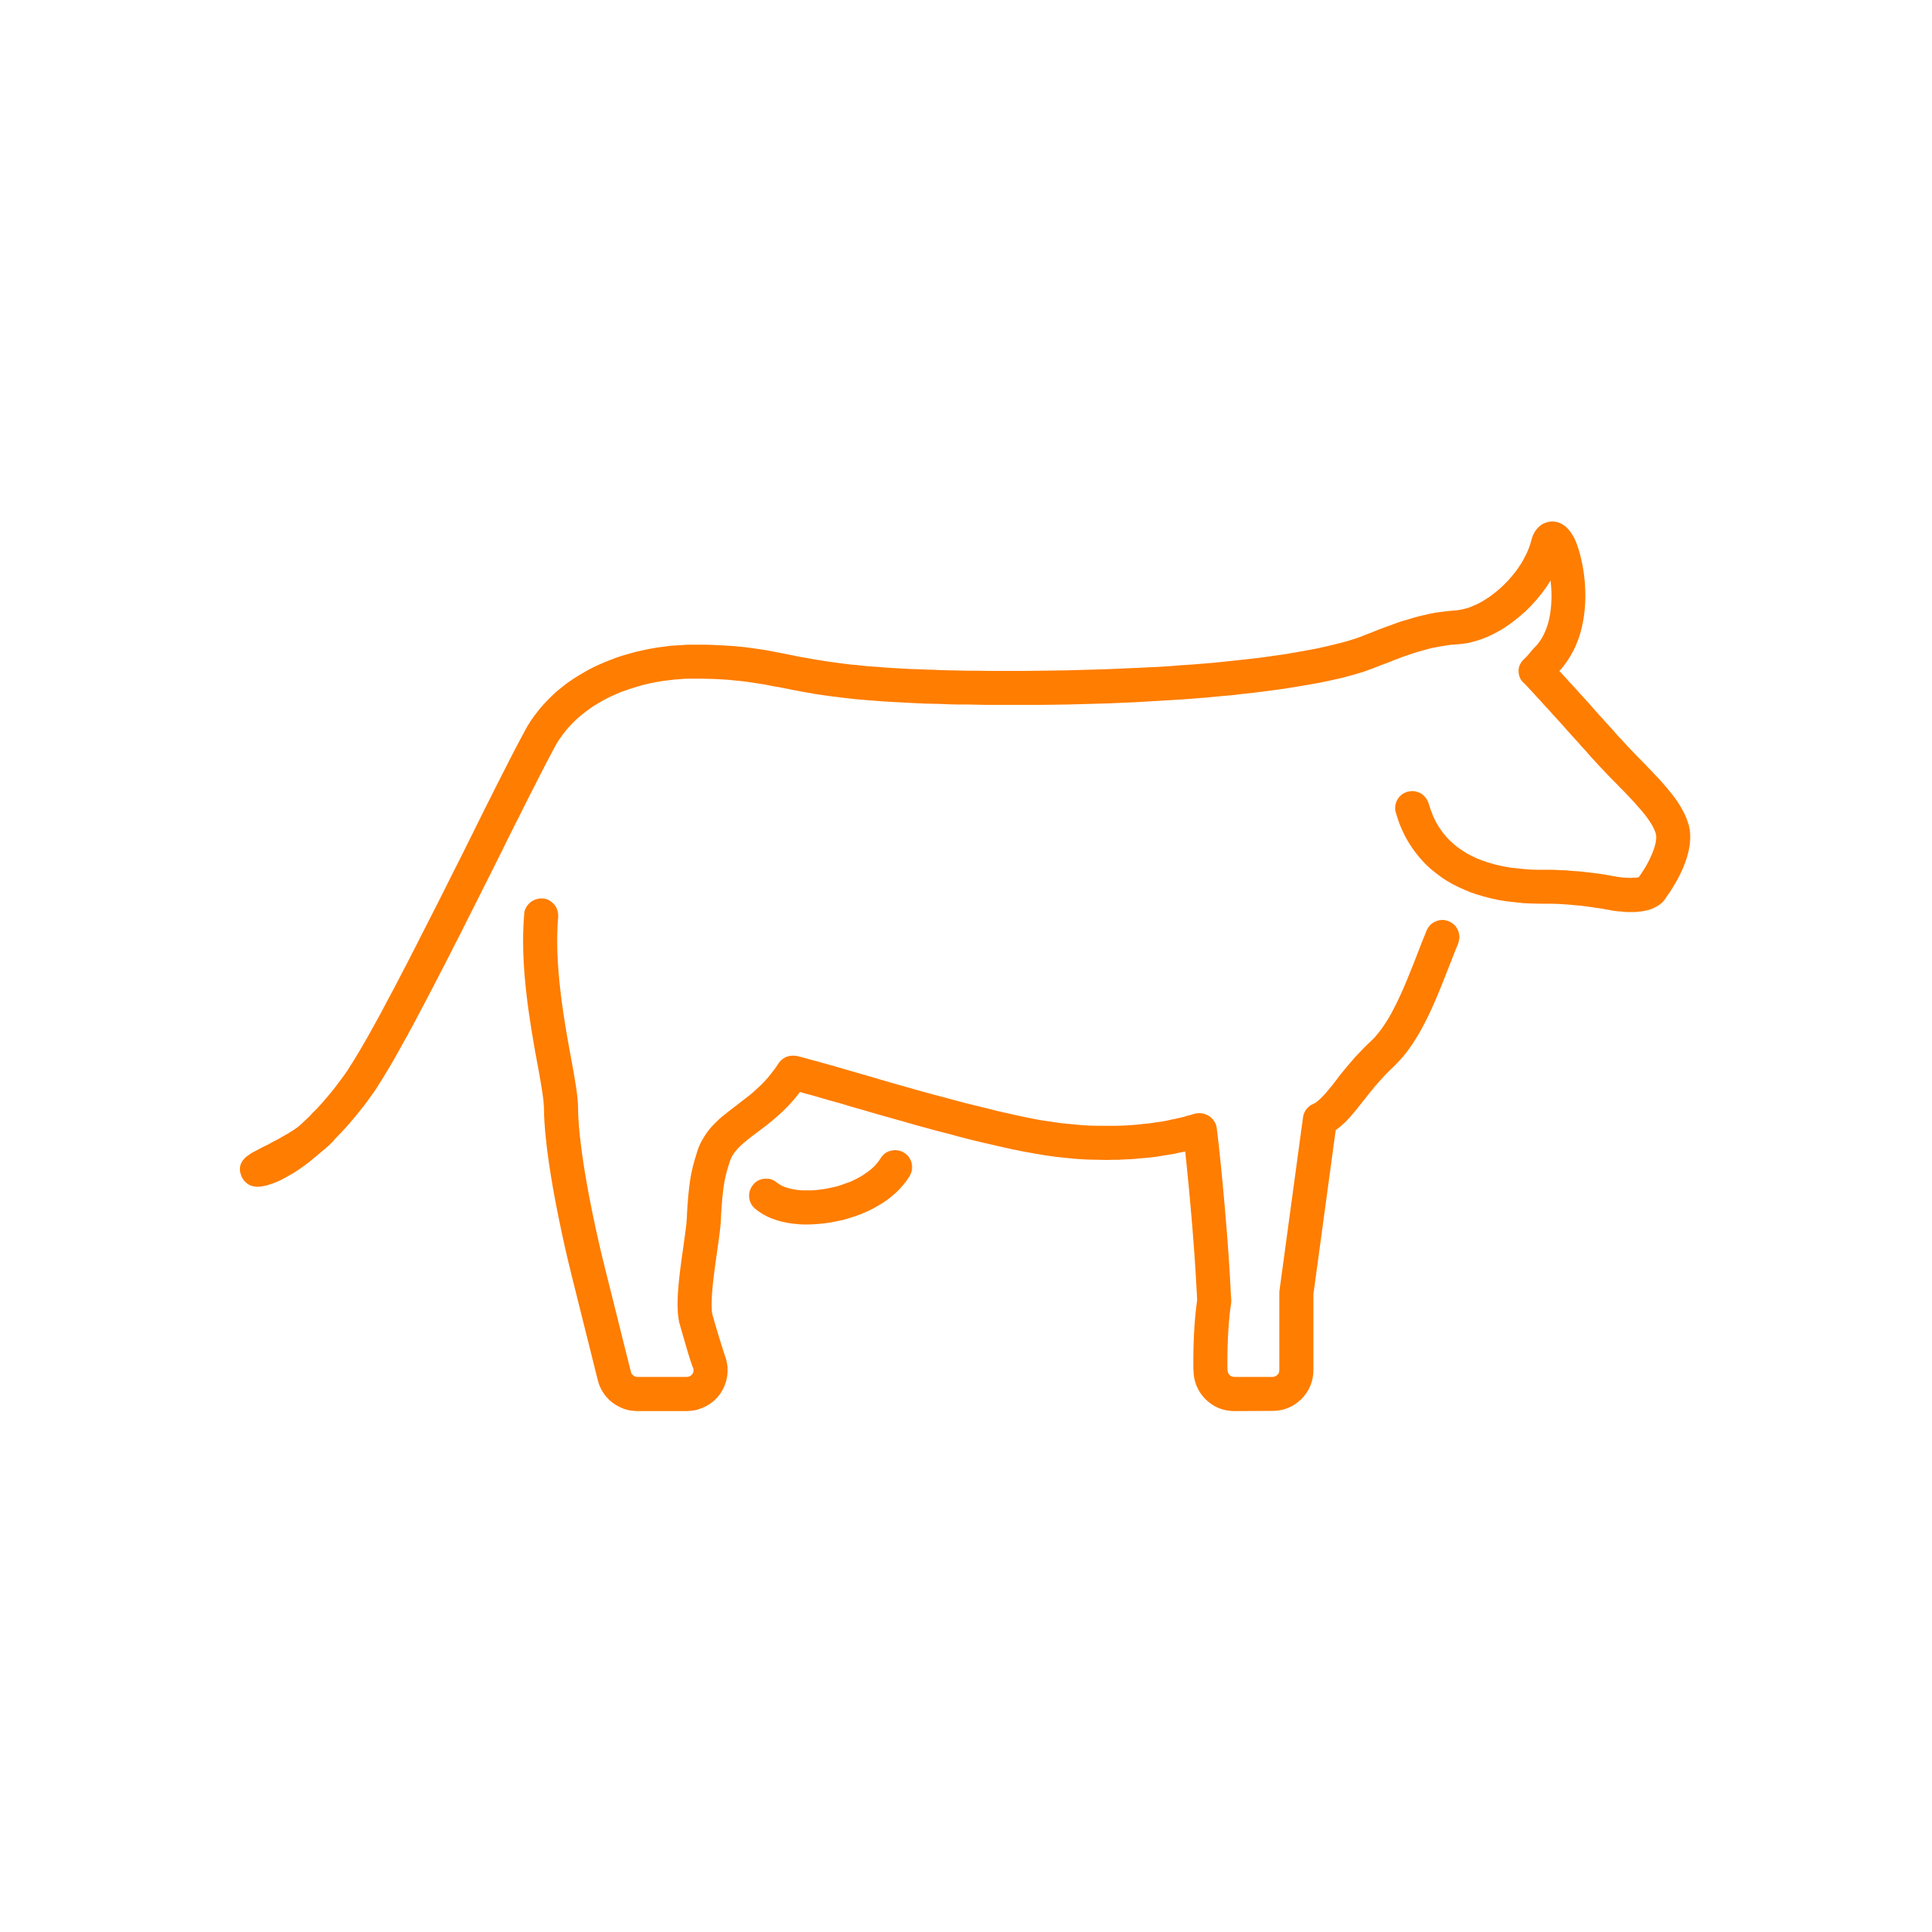 Orange Cattle is a full-service marketing agency, specializing in websites and creative marketing for entrepreneurs, startups, eCommerce companies and medium-small businesses in Houston, Dallas, Lufkin, San Antonio and Austin, Texas. We help brands create differentiators through websites, Facebook marketing, social-media marketing, Google Adwords, software and additional technology services.